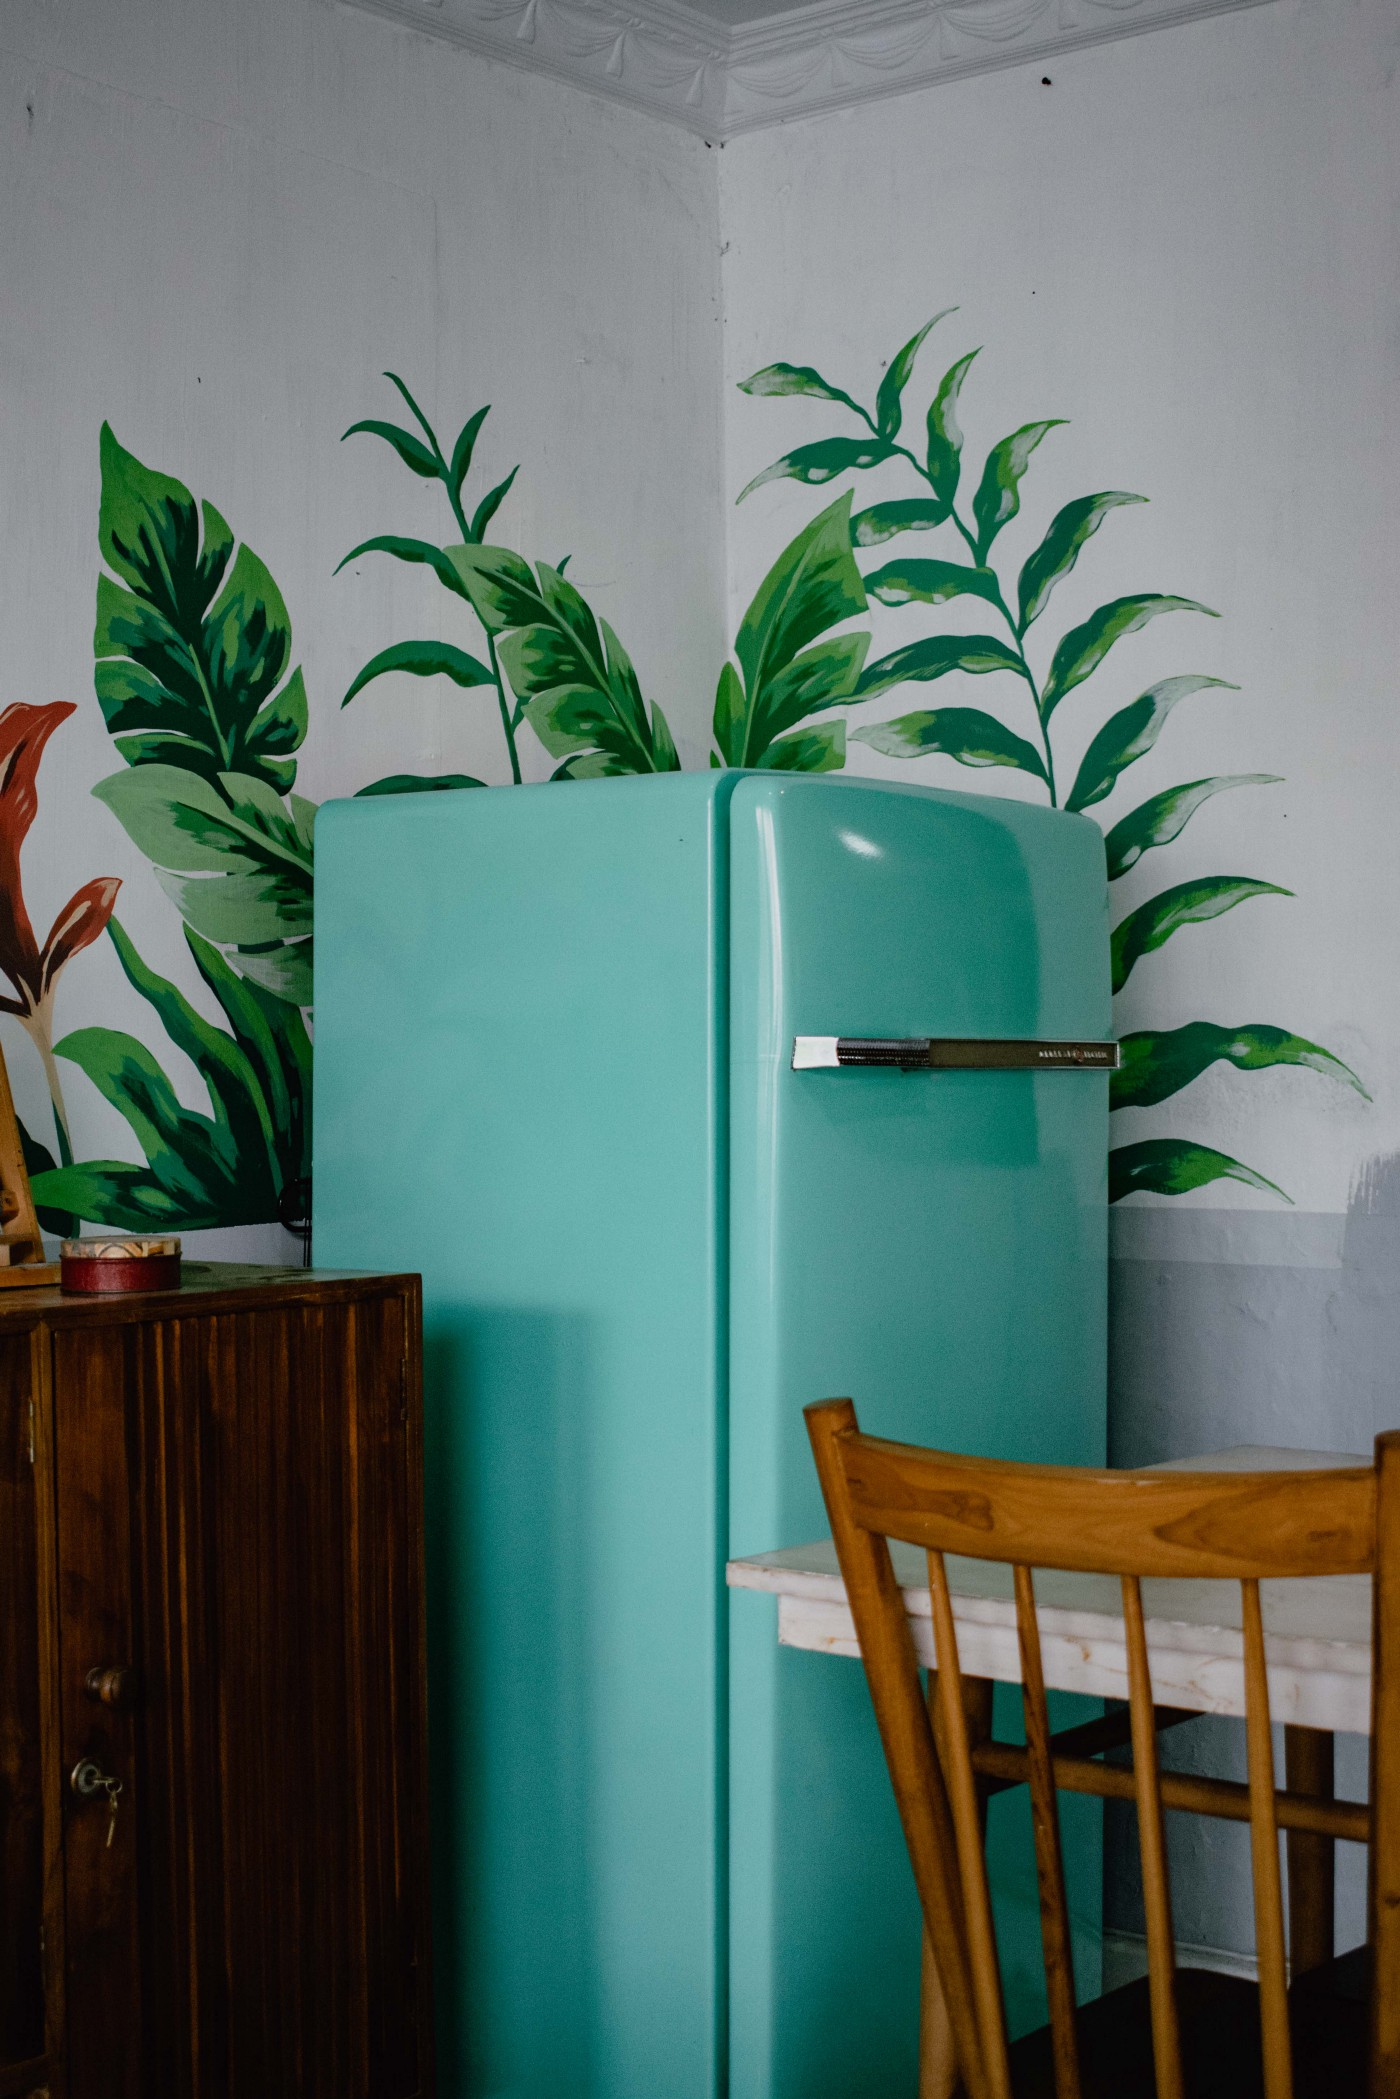 teal green refridgerator in a kitchen. A chair is in front of it, and painted leaves are behind it on the white wall.